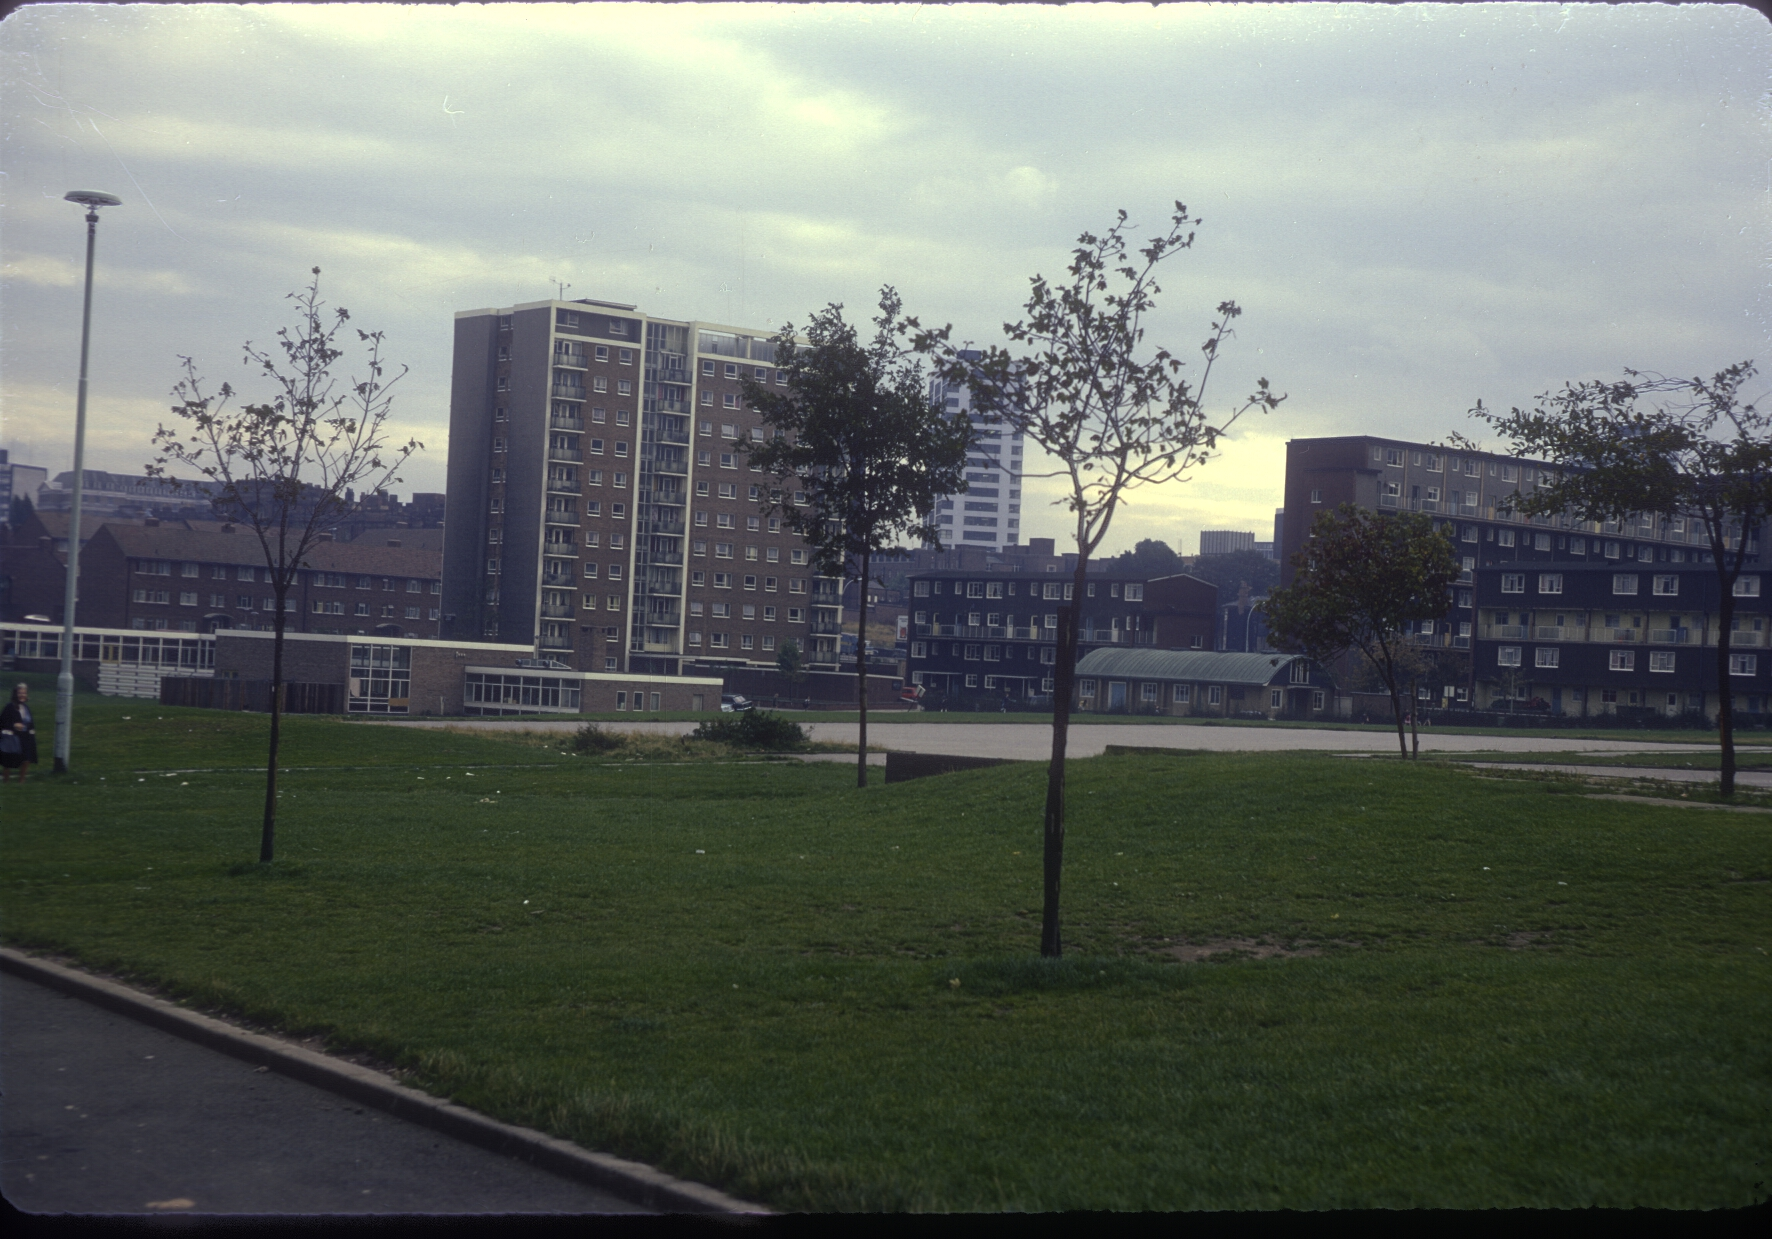 Ladywood, Lincoln Tower (Morville St) St John's Primary School in foreground - View towards Ladywood Rd, Chamberlain Gardens. 24th September 1968